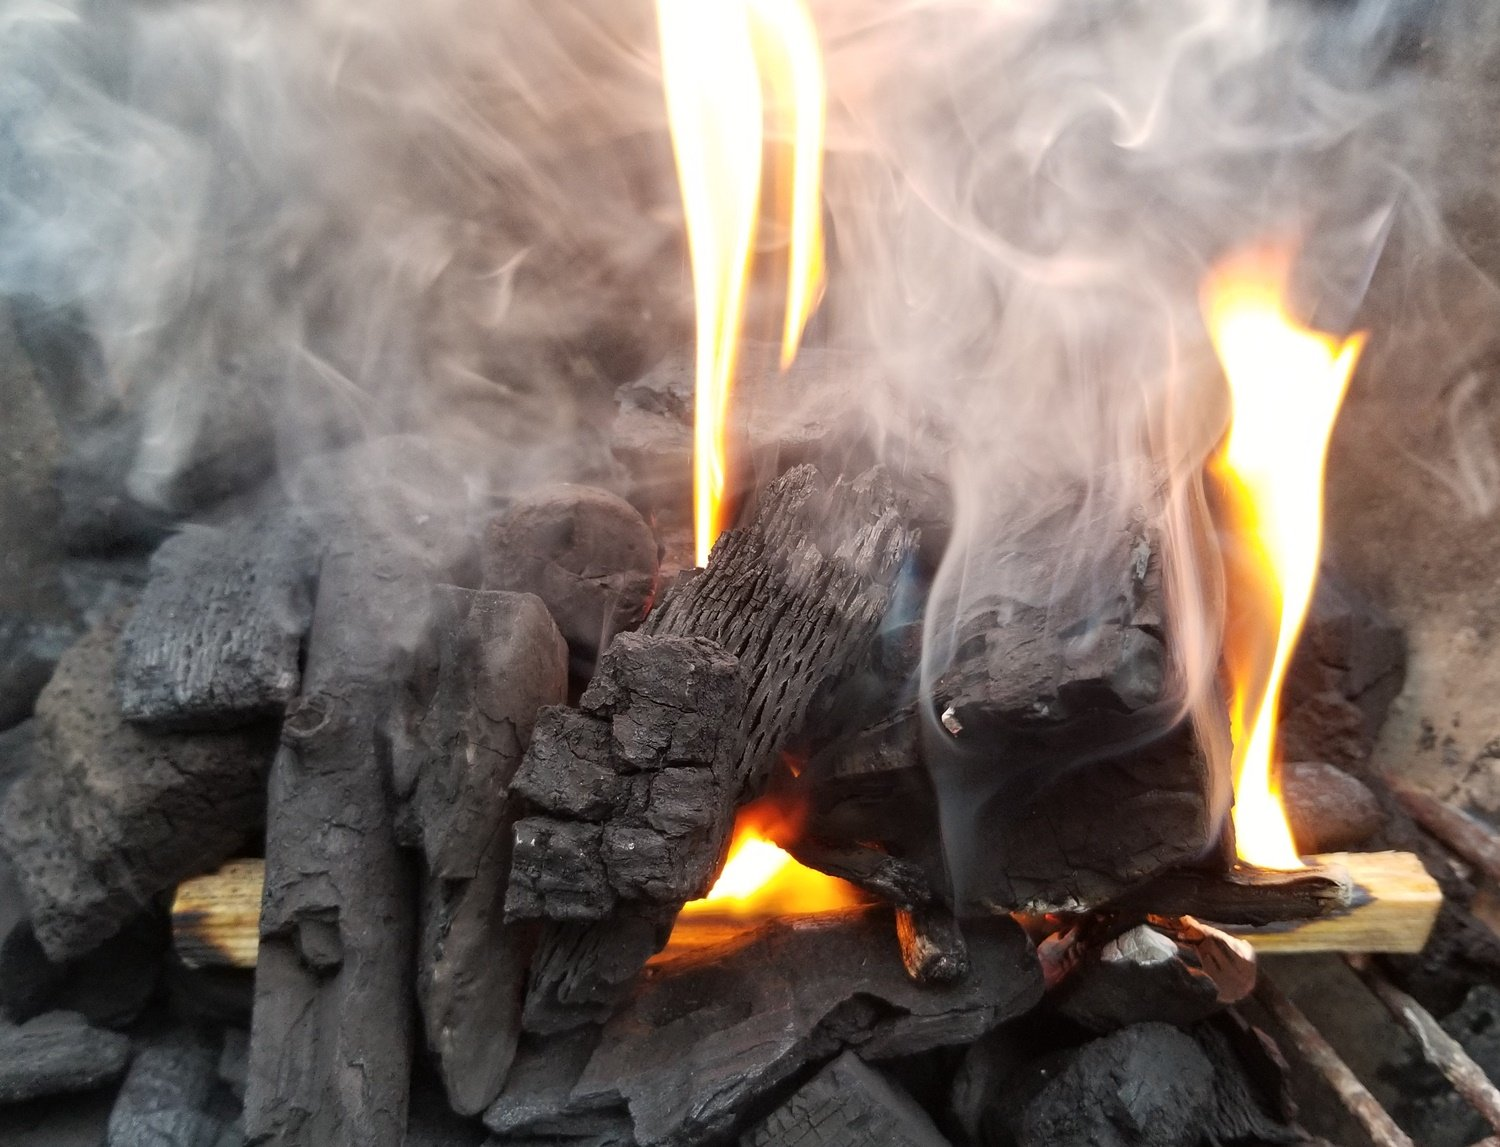 Bettwrwood lump charcoal being lit with fatwood firestarter